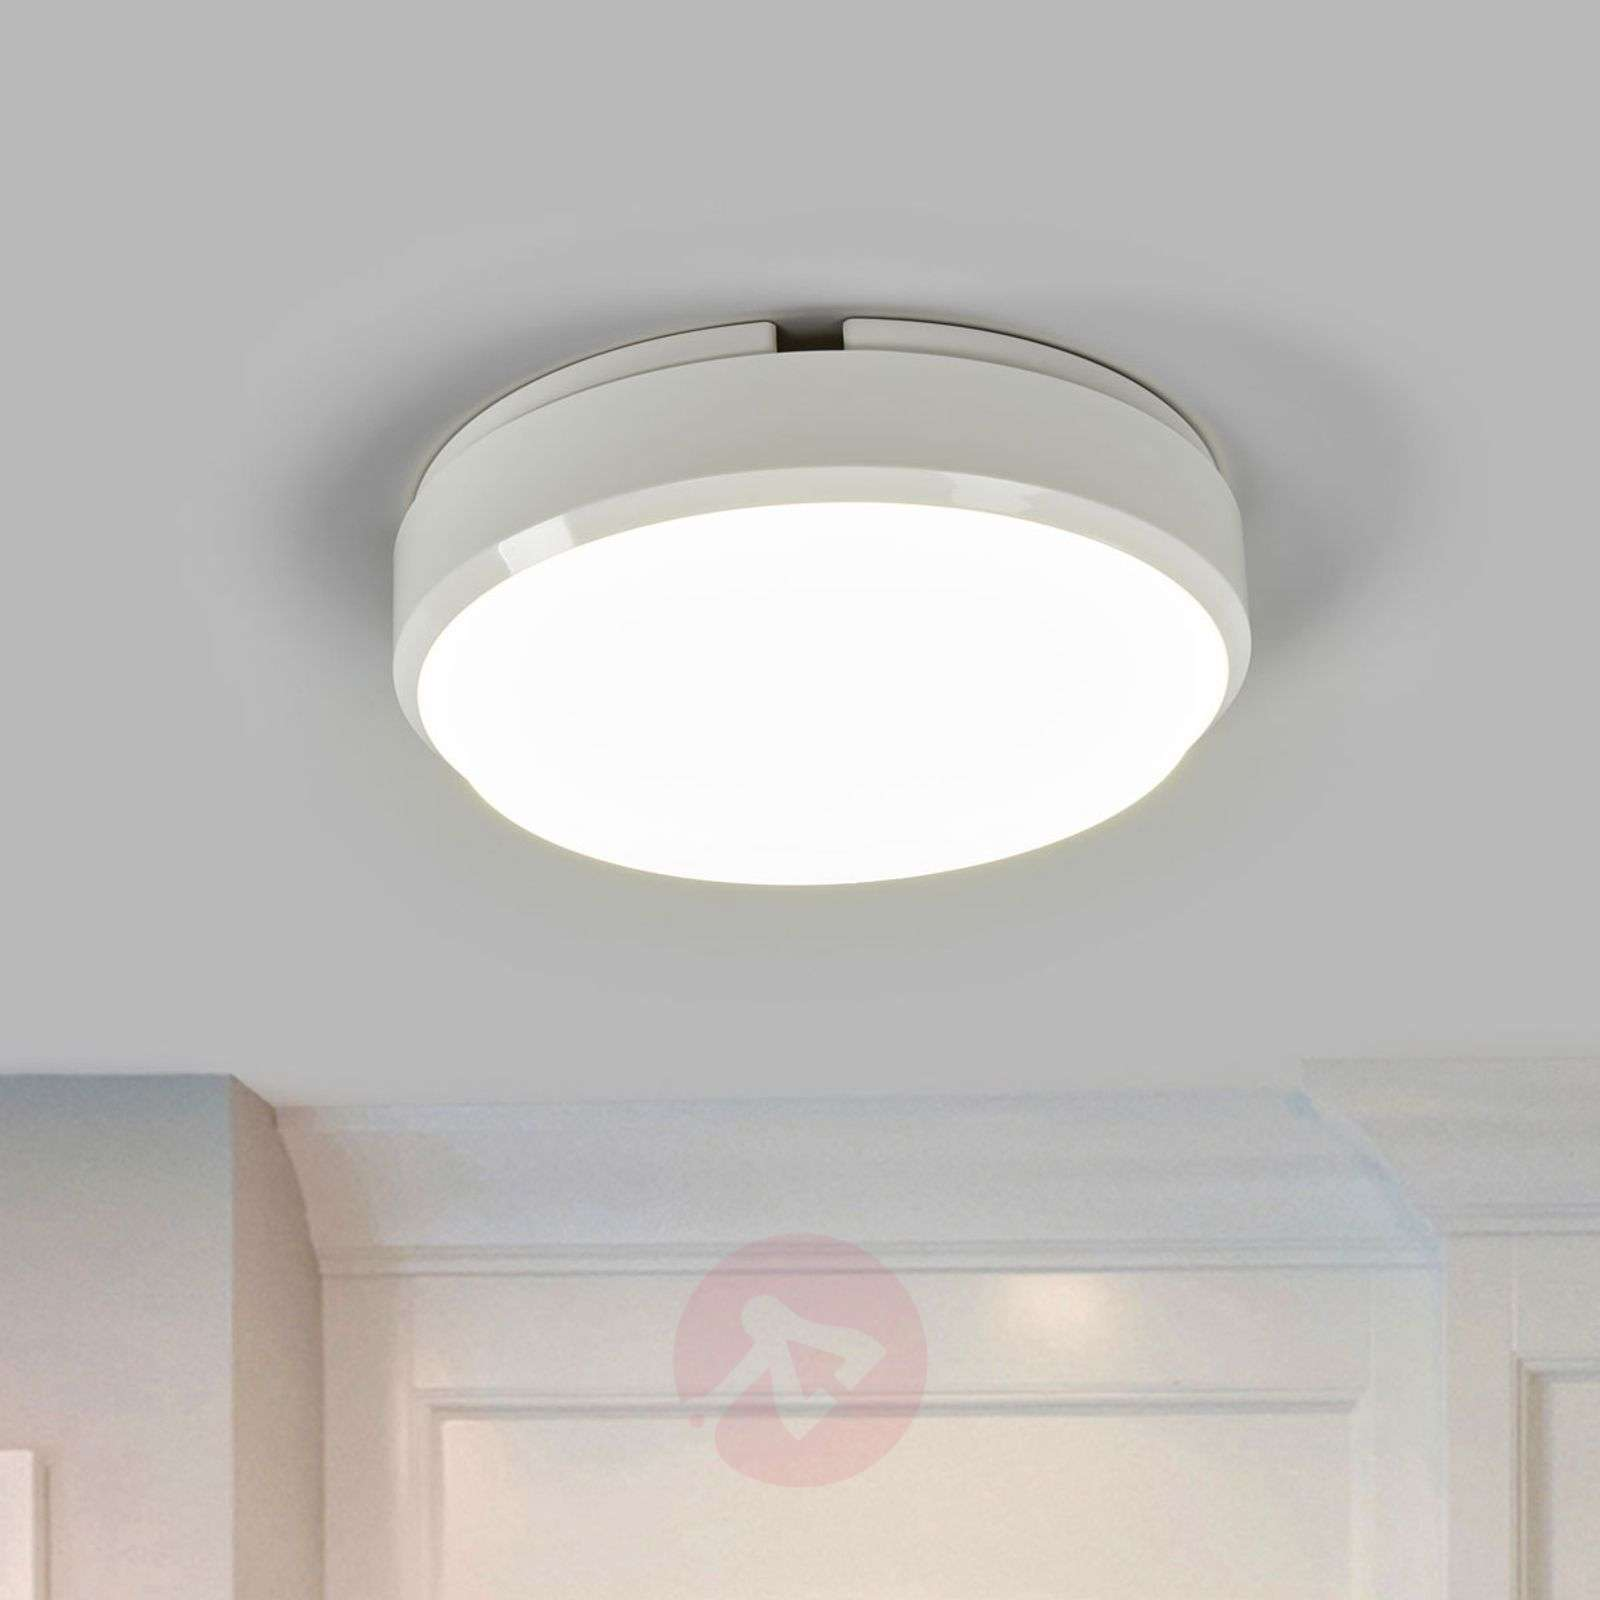 Round LED ceiling light Bulkhead with sensor-8559218-02